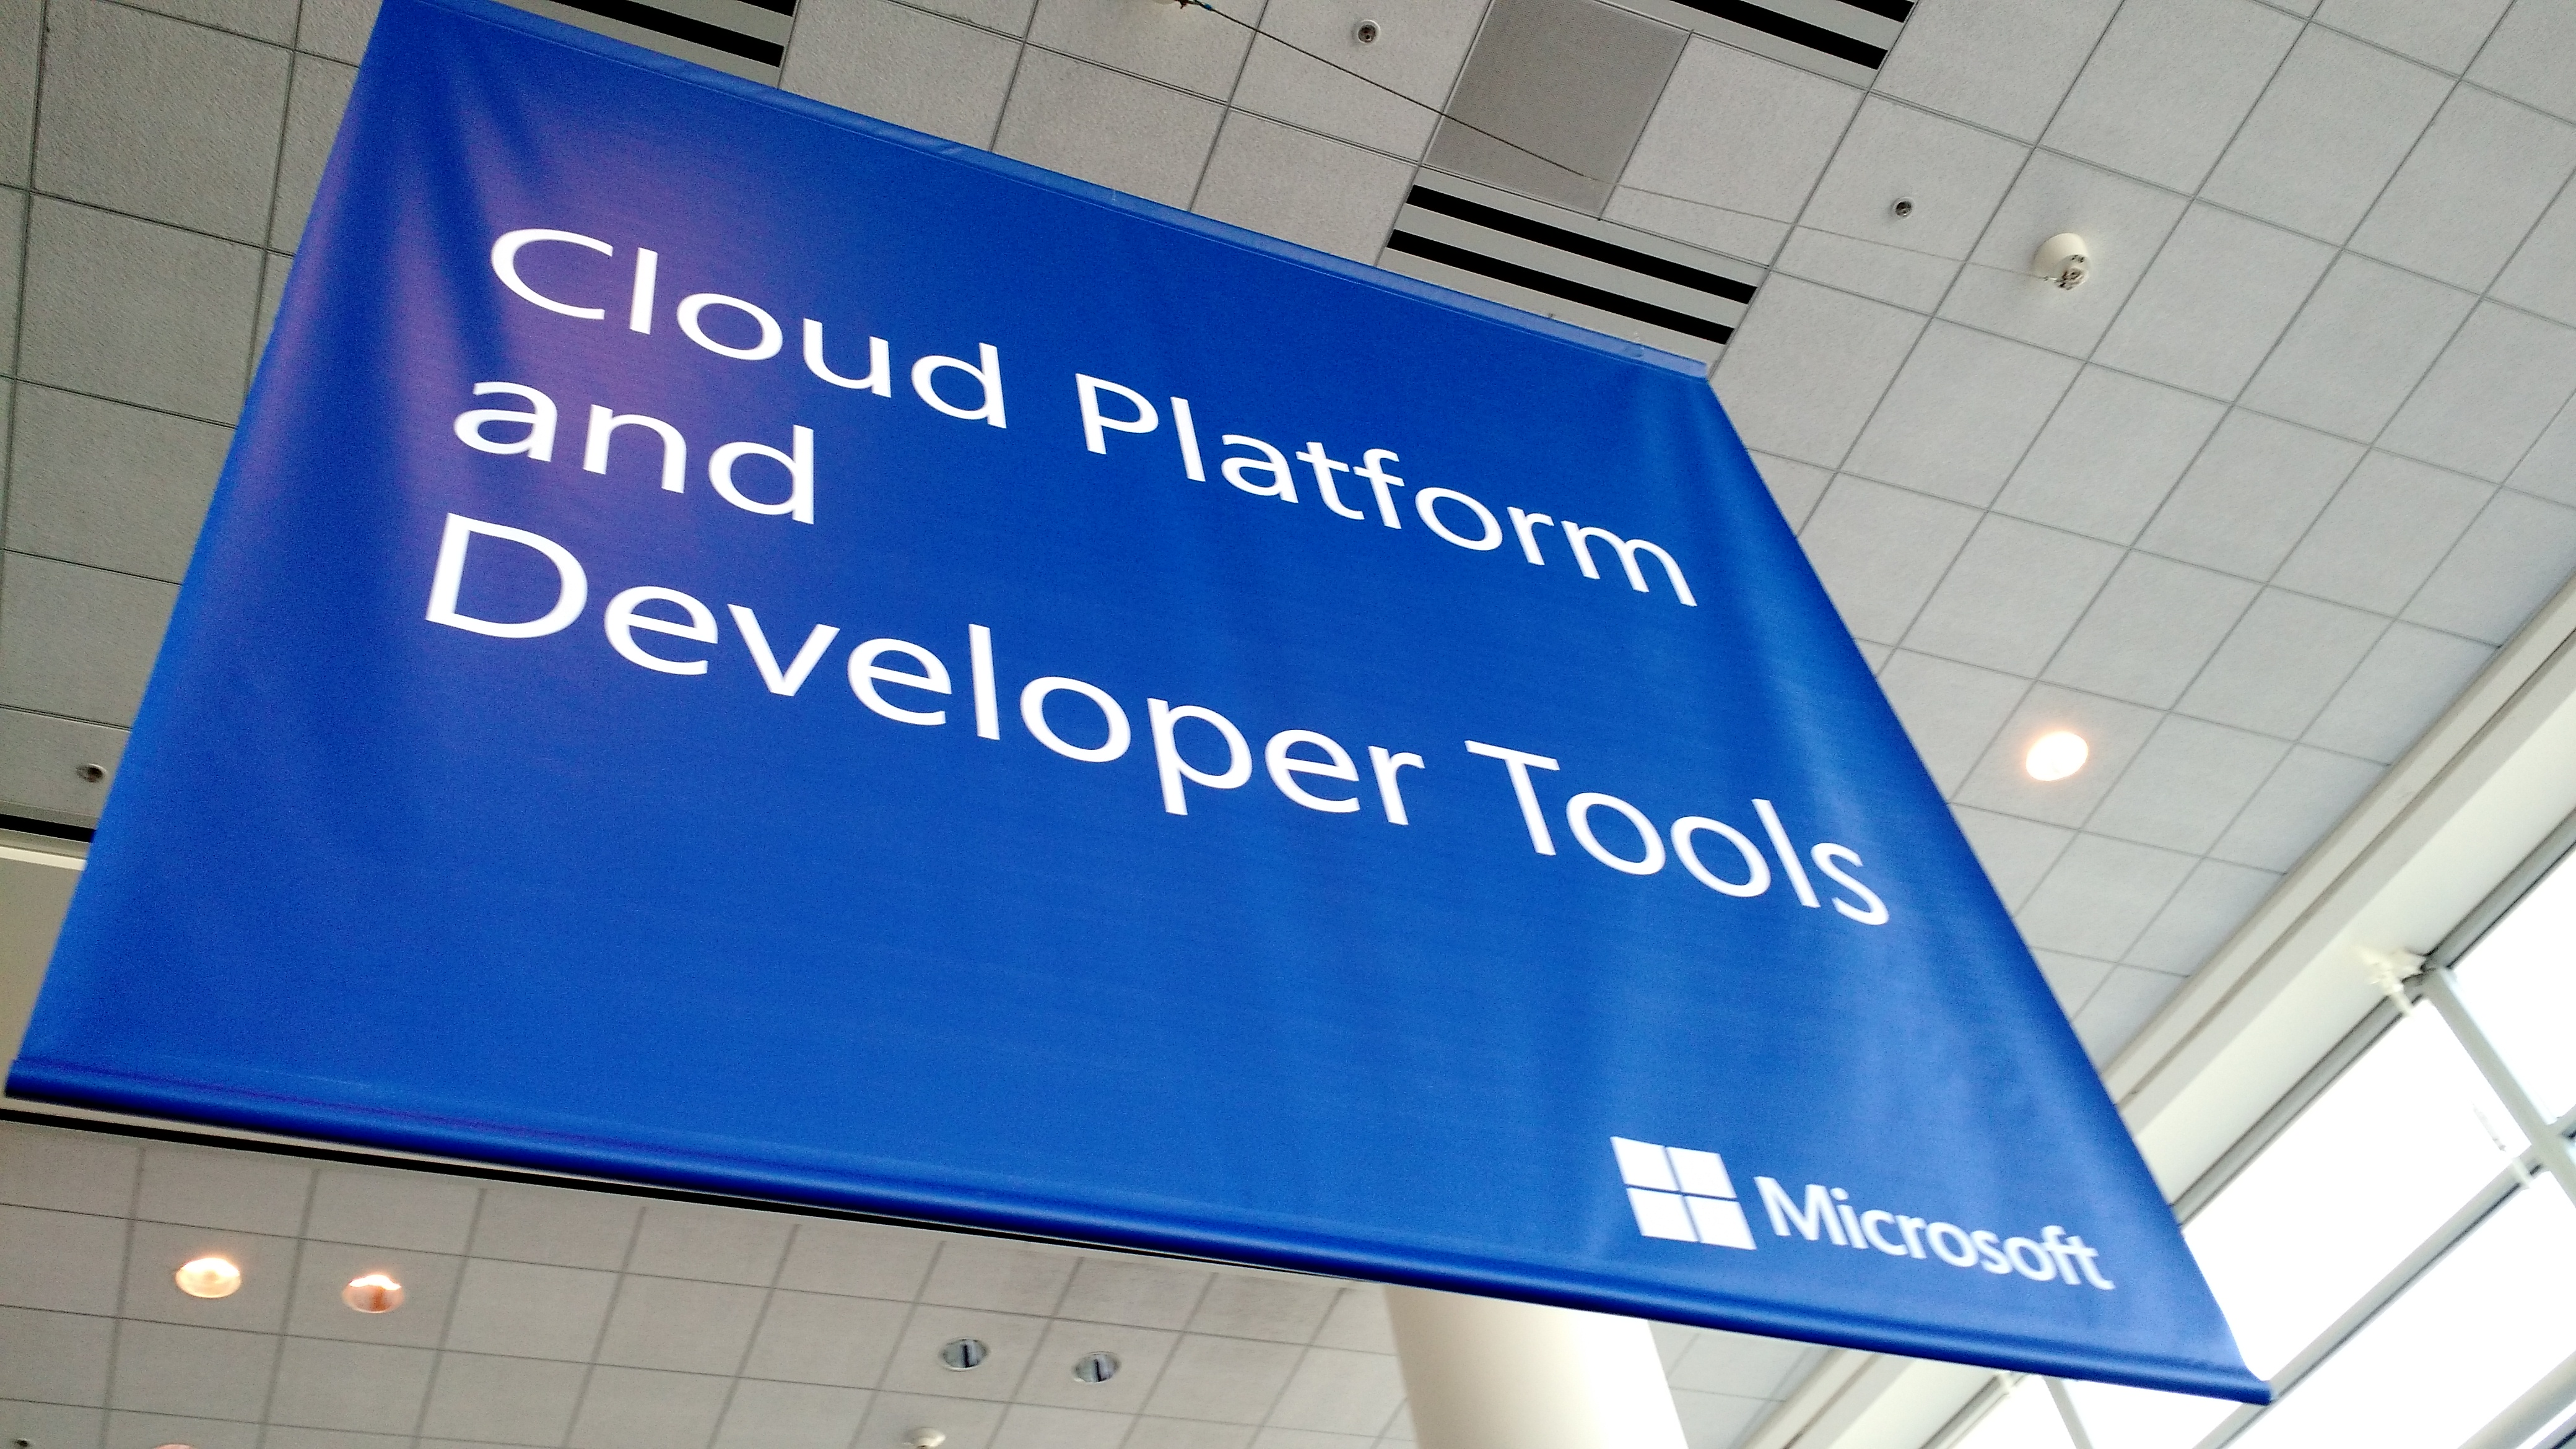 At Microsoft's 2015 Build conference in San Francisco on April 29.